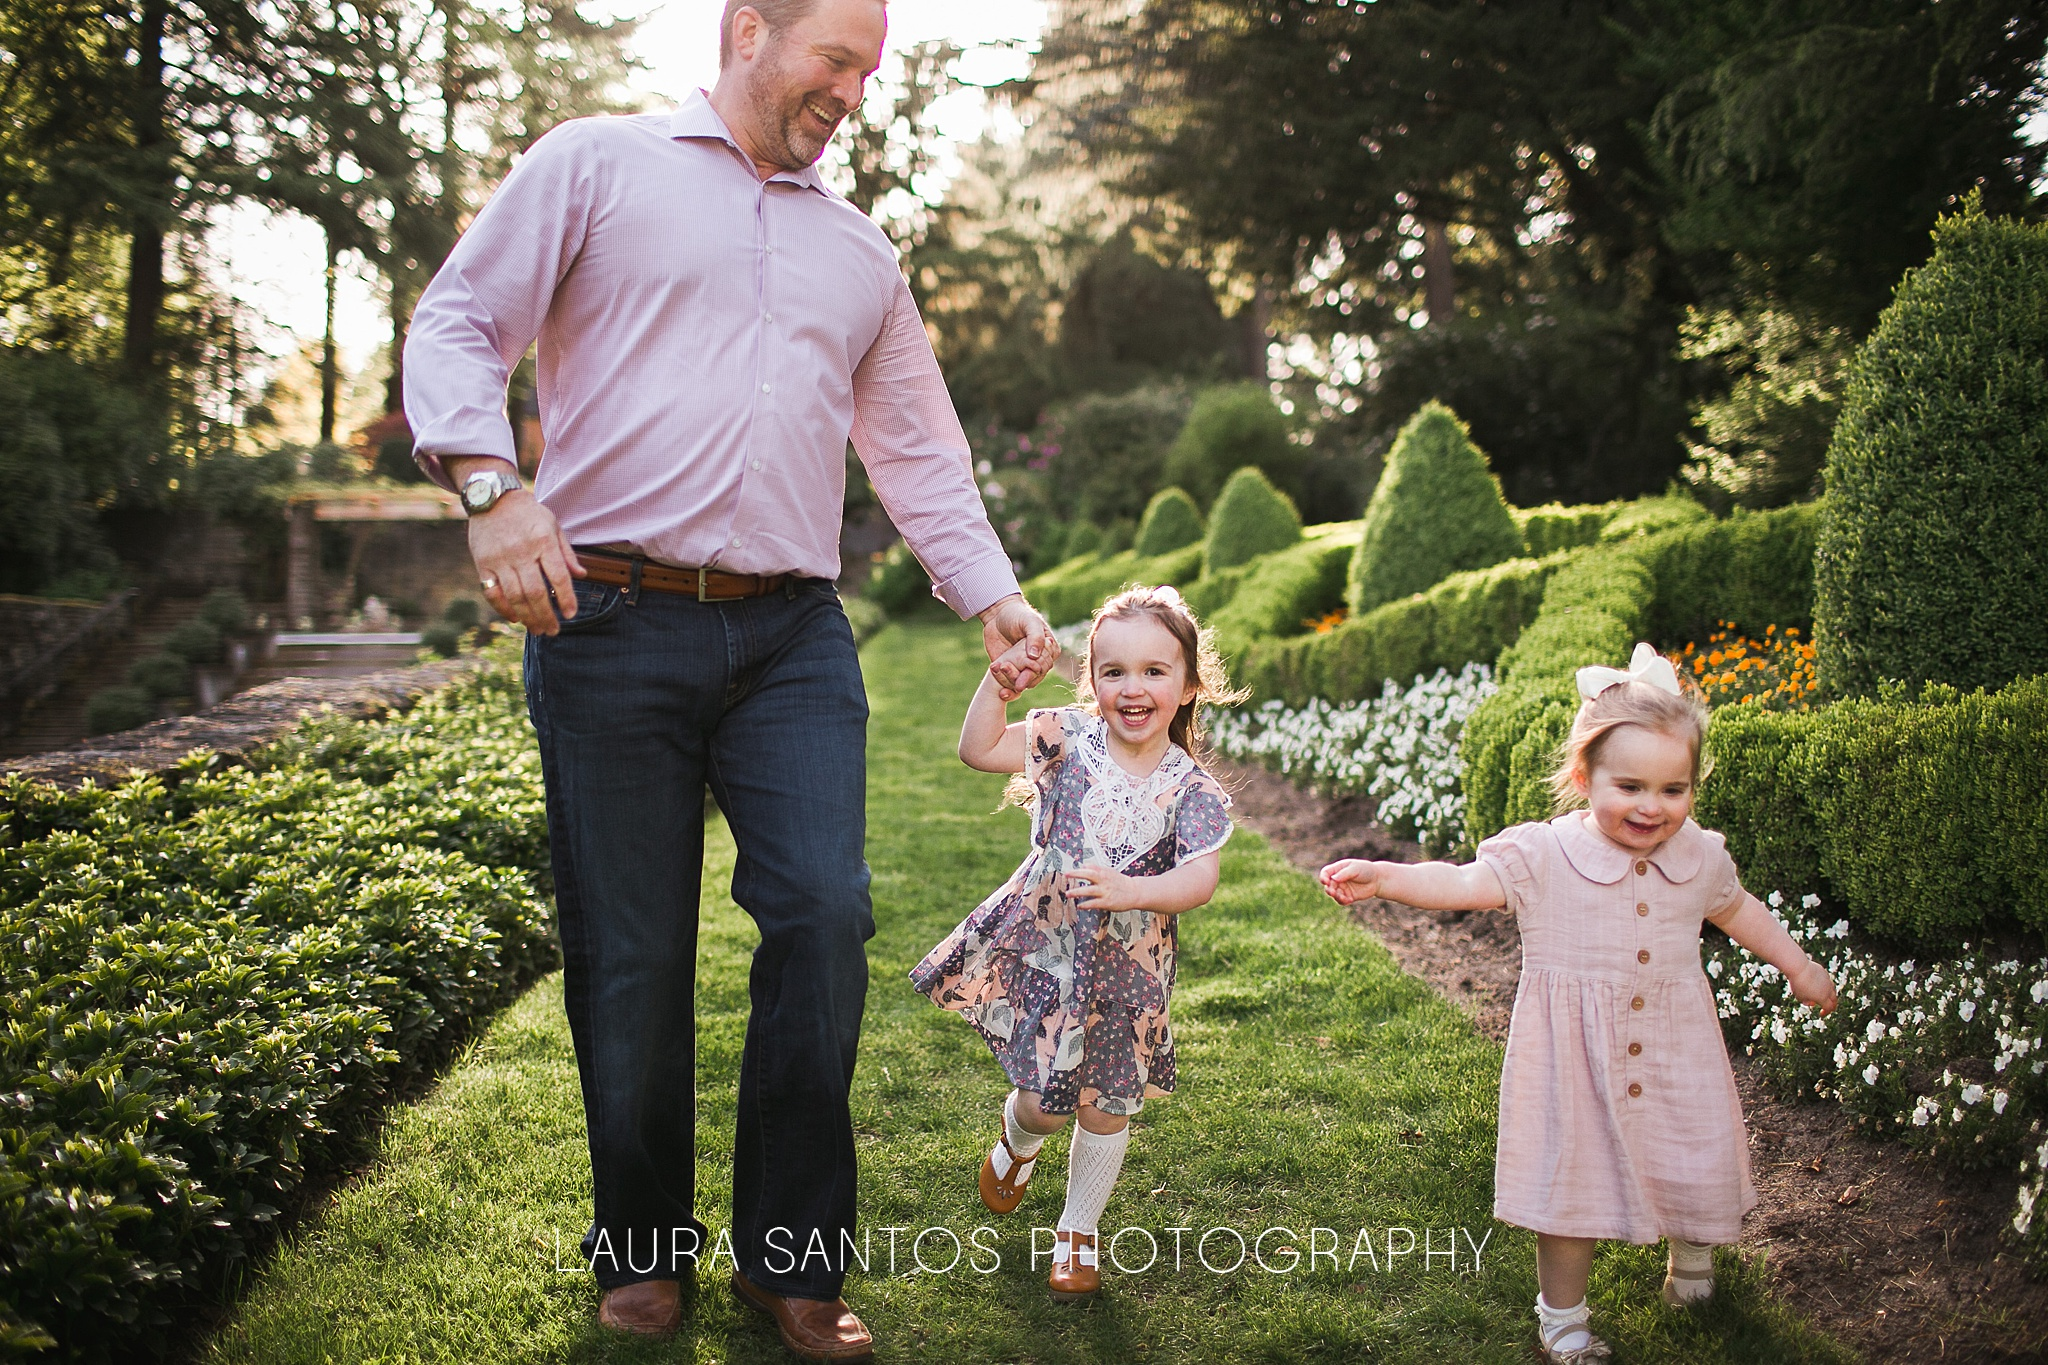 Laura Santos Photography Portland Oregon Family Photographer_0912.jpg